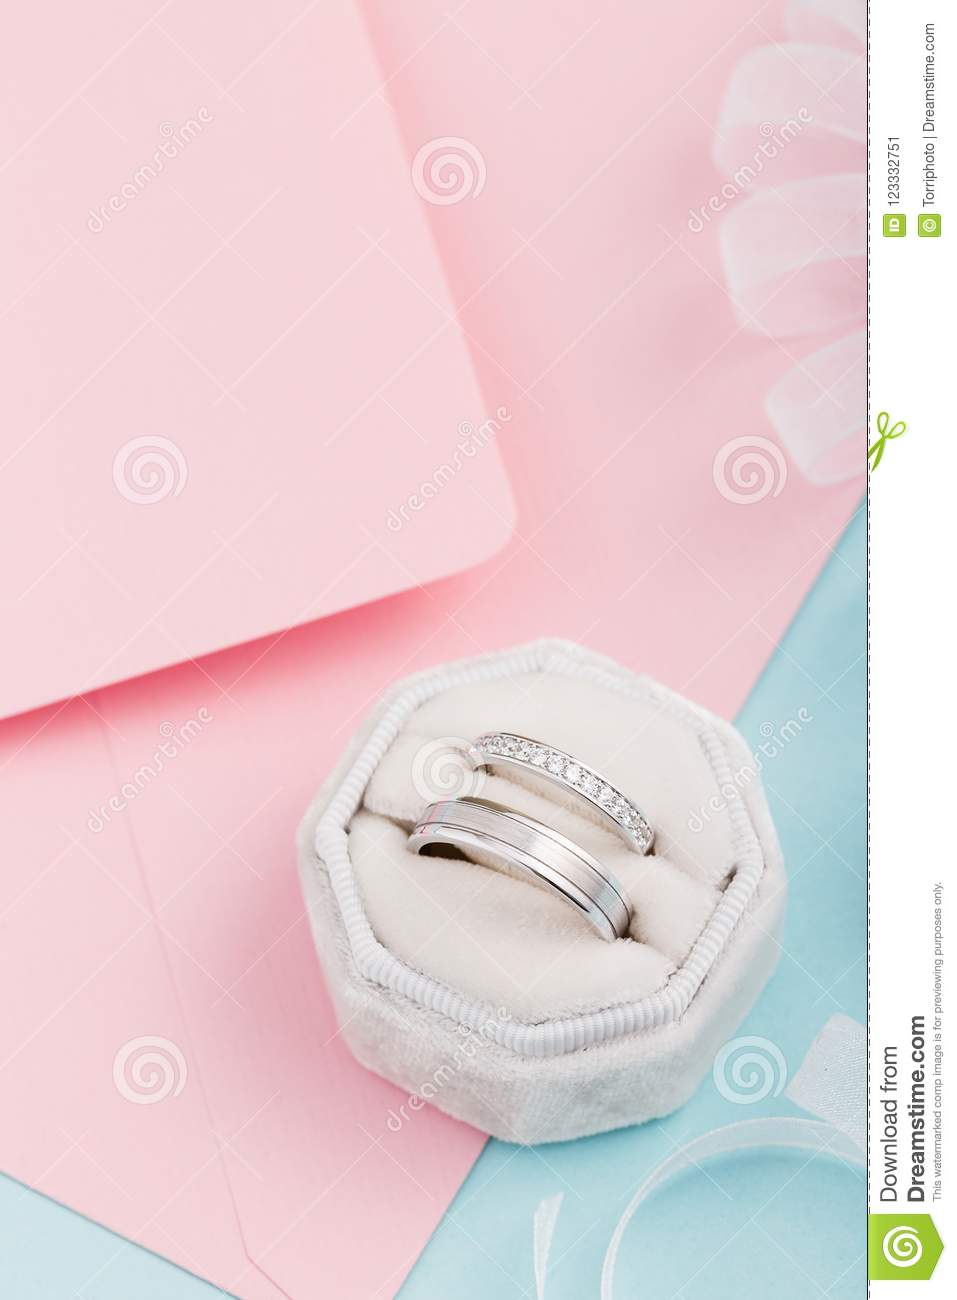 Two Silver Wedding Rings With Diamonds On Pink Background Stock ...